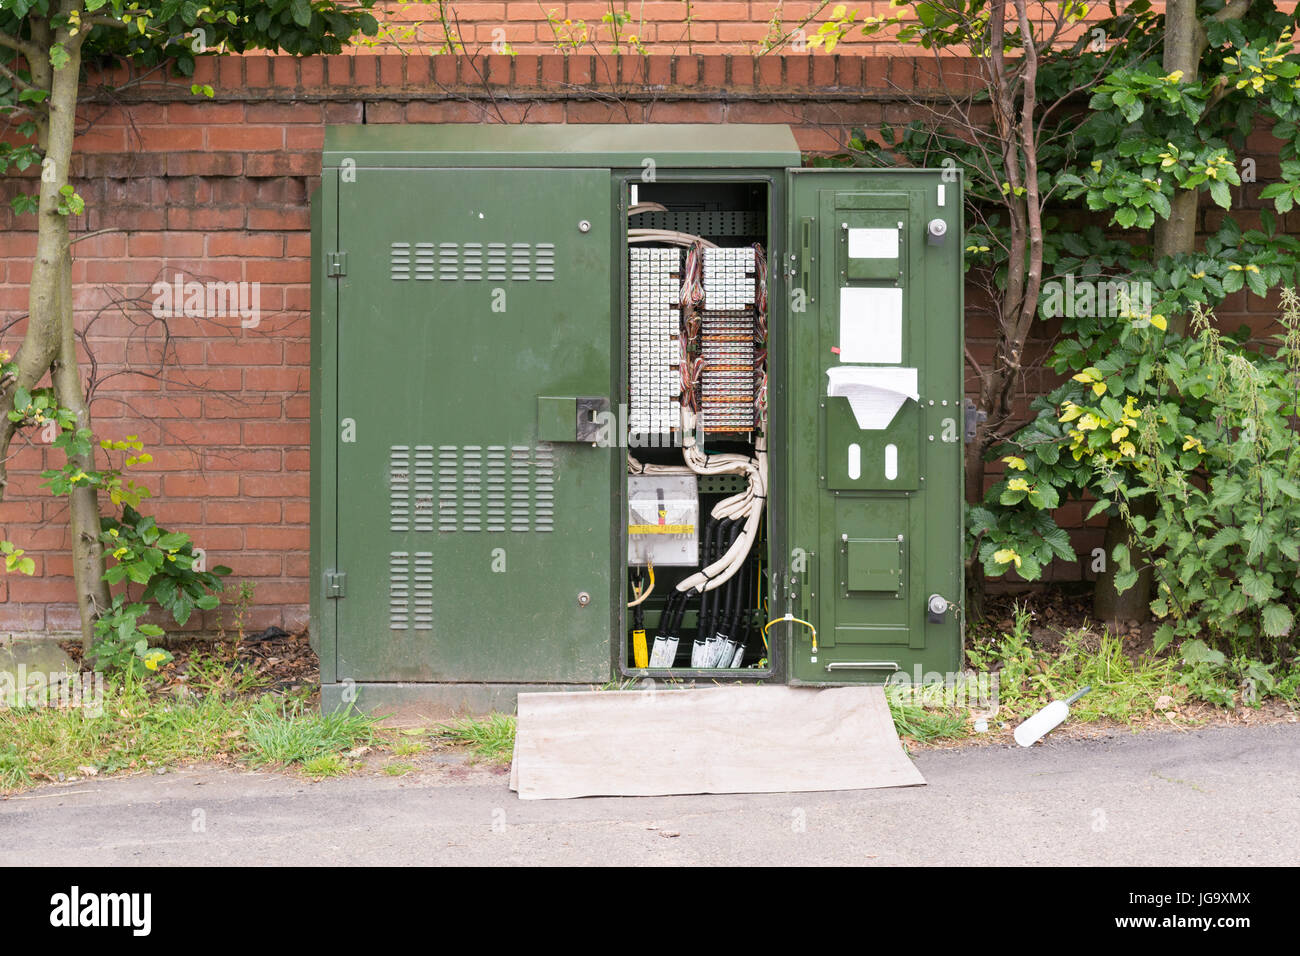 open bt openreach green cabinet primary cross connection point, England, UK - Stock Image